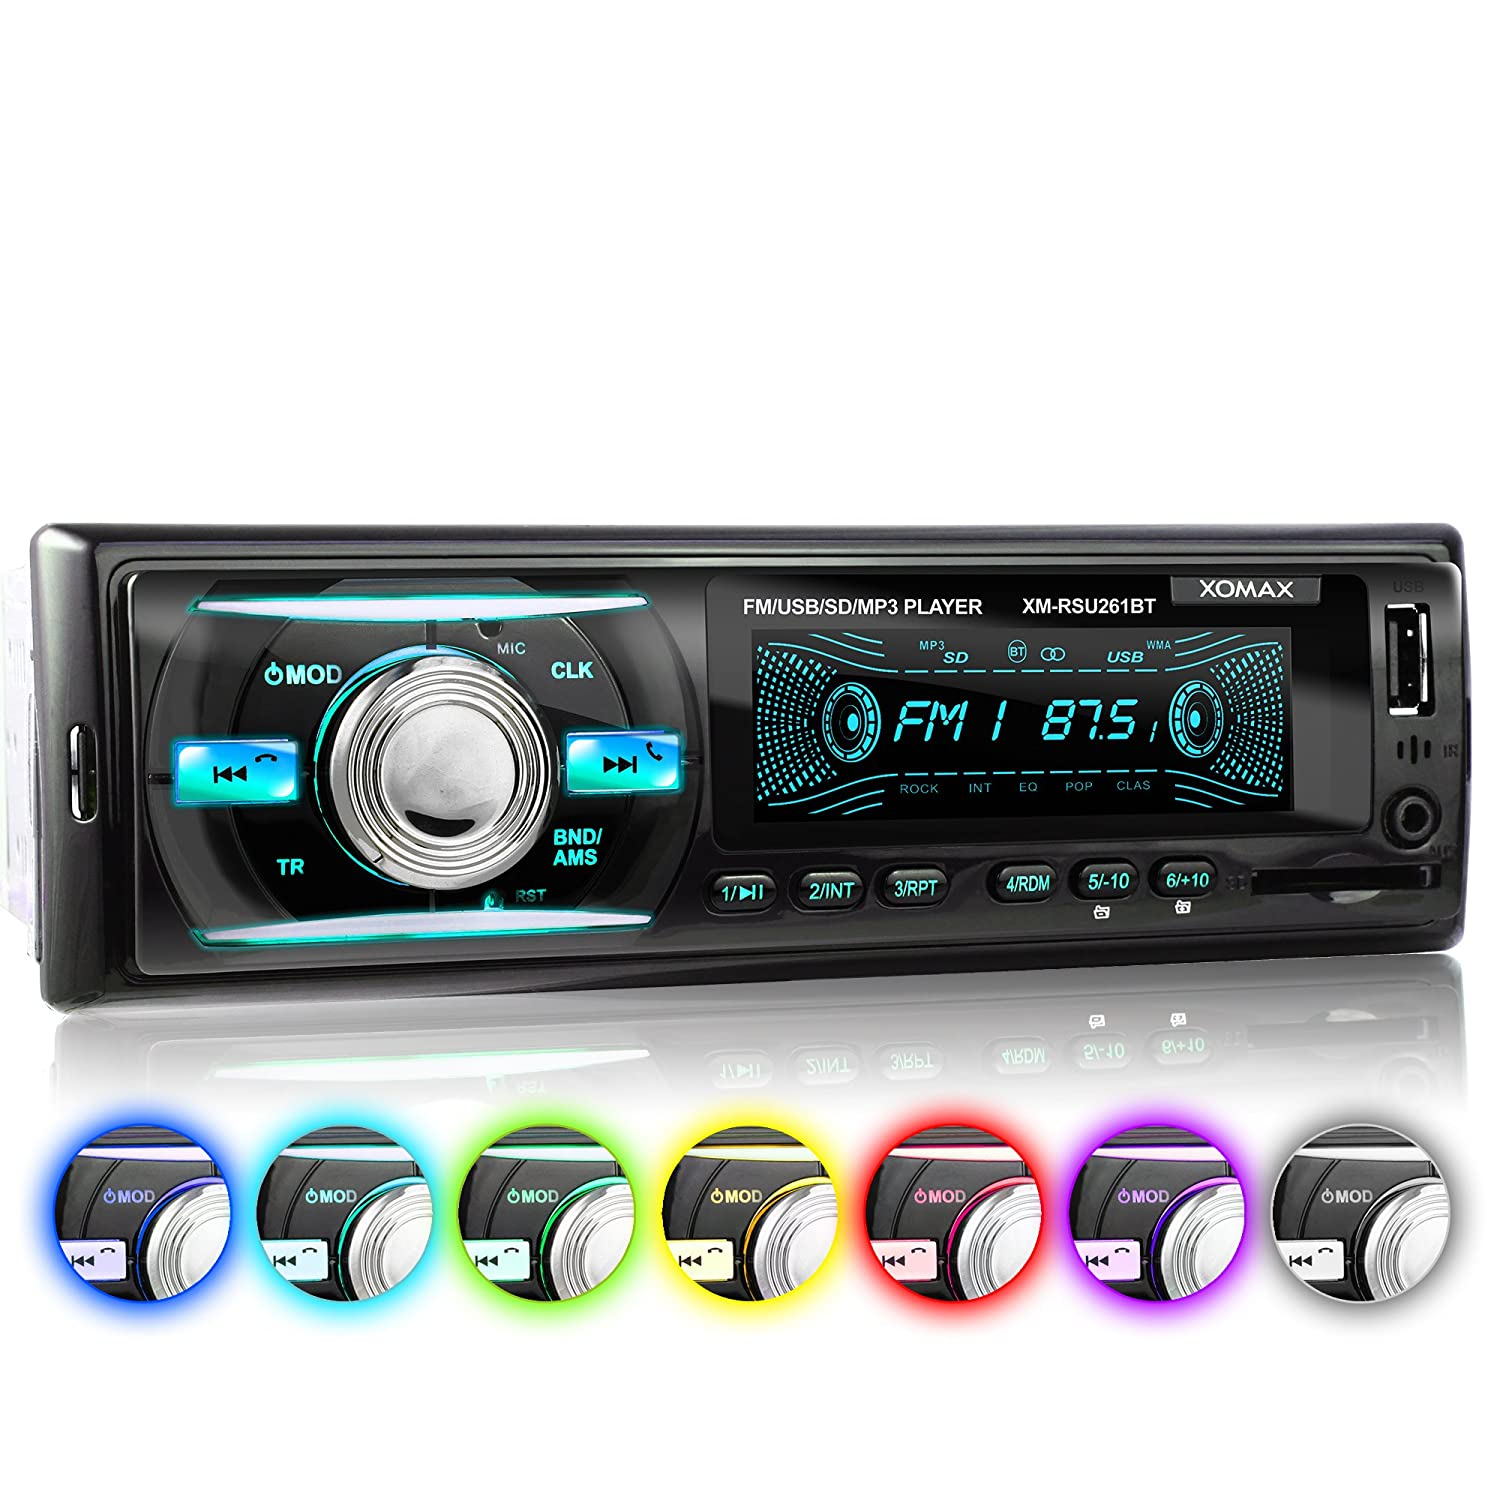 XOMAX XM-RSU261BT Car Stereo without CD-Player + Bluetooth Hands-free & music transfer + USB port (plays up to 128 GB) and SD-card-slot (plays up to 128 GB) for MP3 & WMA + 7 light colours adjustable: Blue, Red, Green... + AUX-Input + FM radio + Single DIN